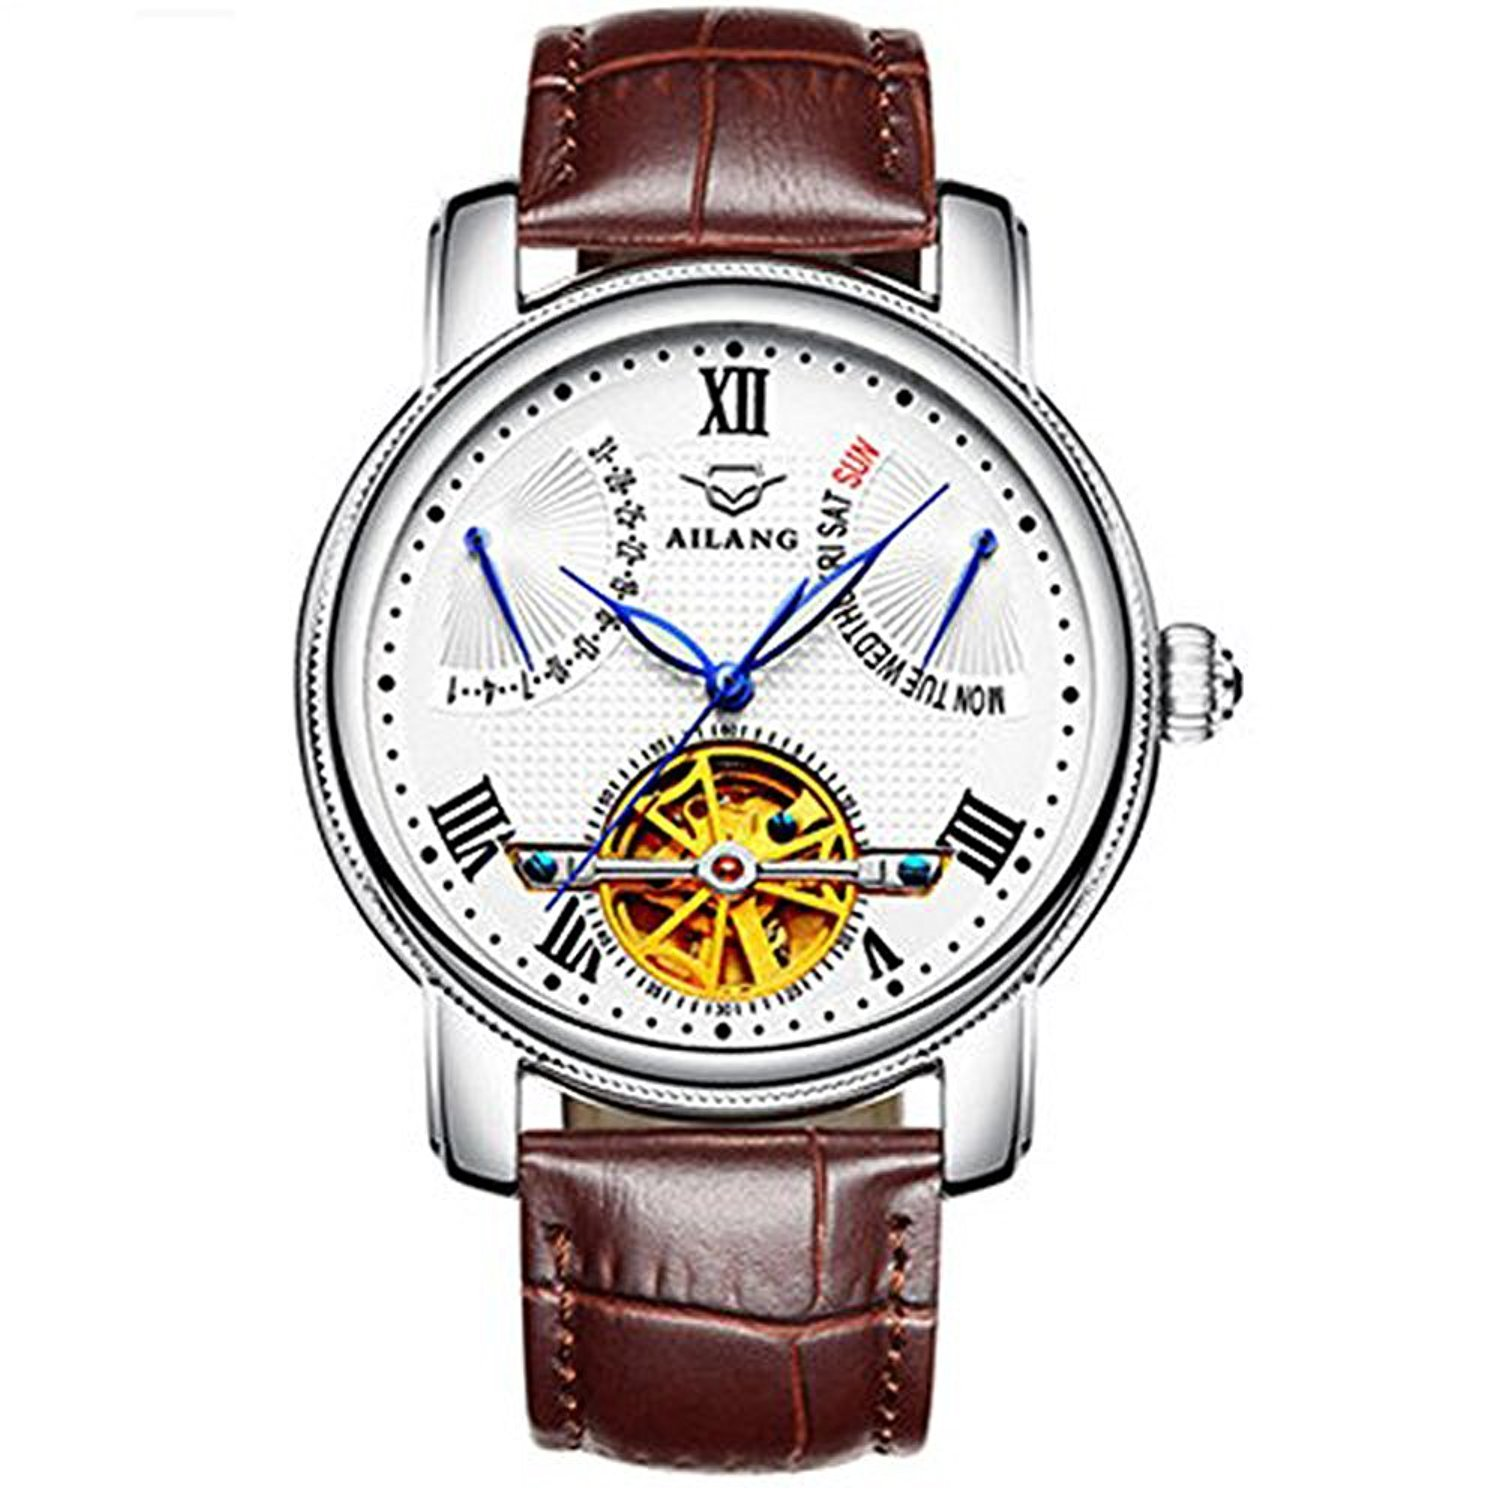 Ailang Men's business leisure leather automatic mechanical watches tourbillon watches men's luxury watches brand watches (silvery) -290